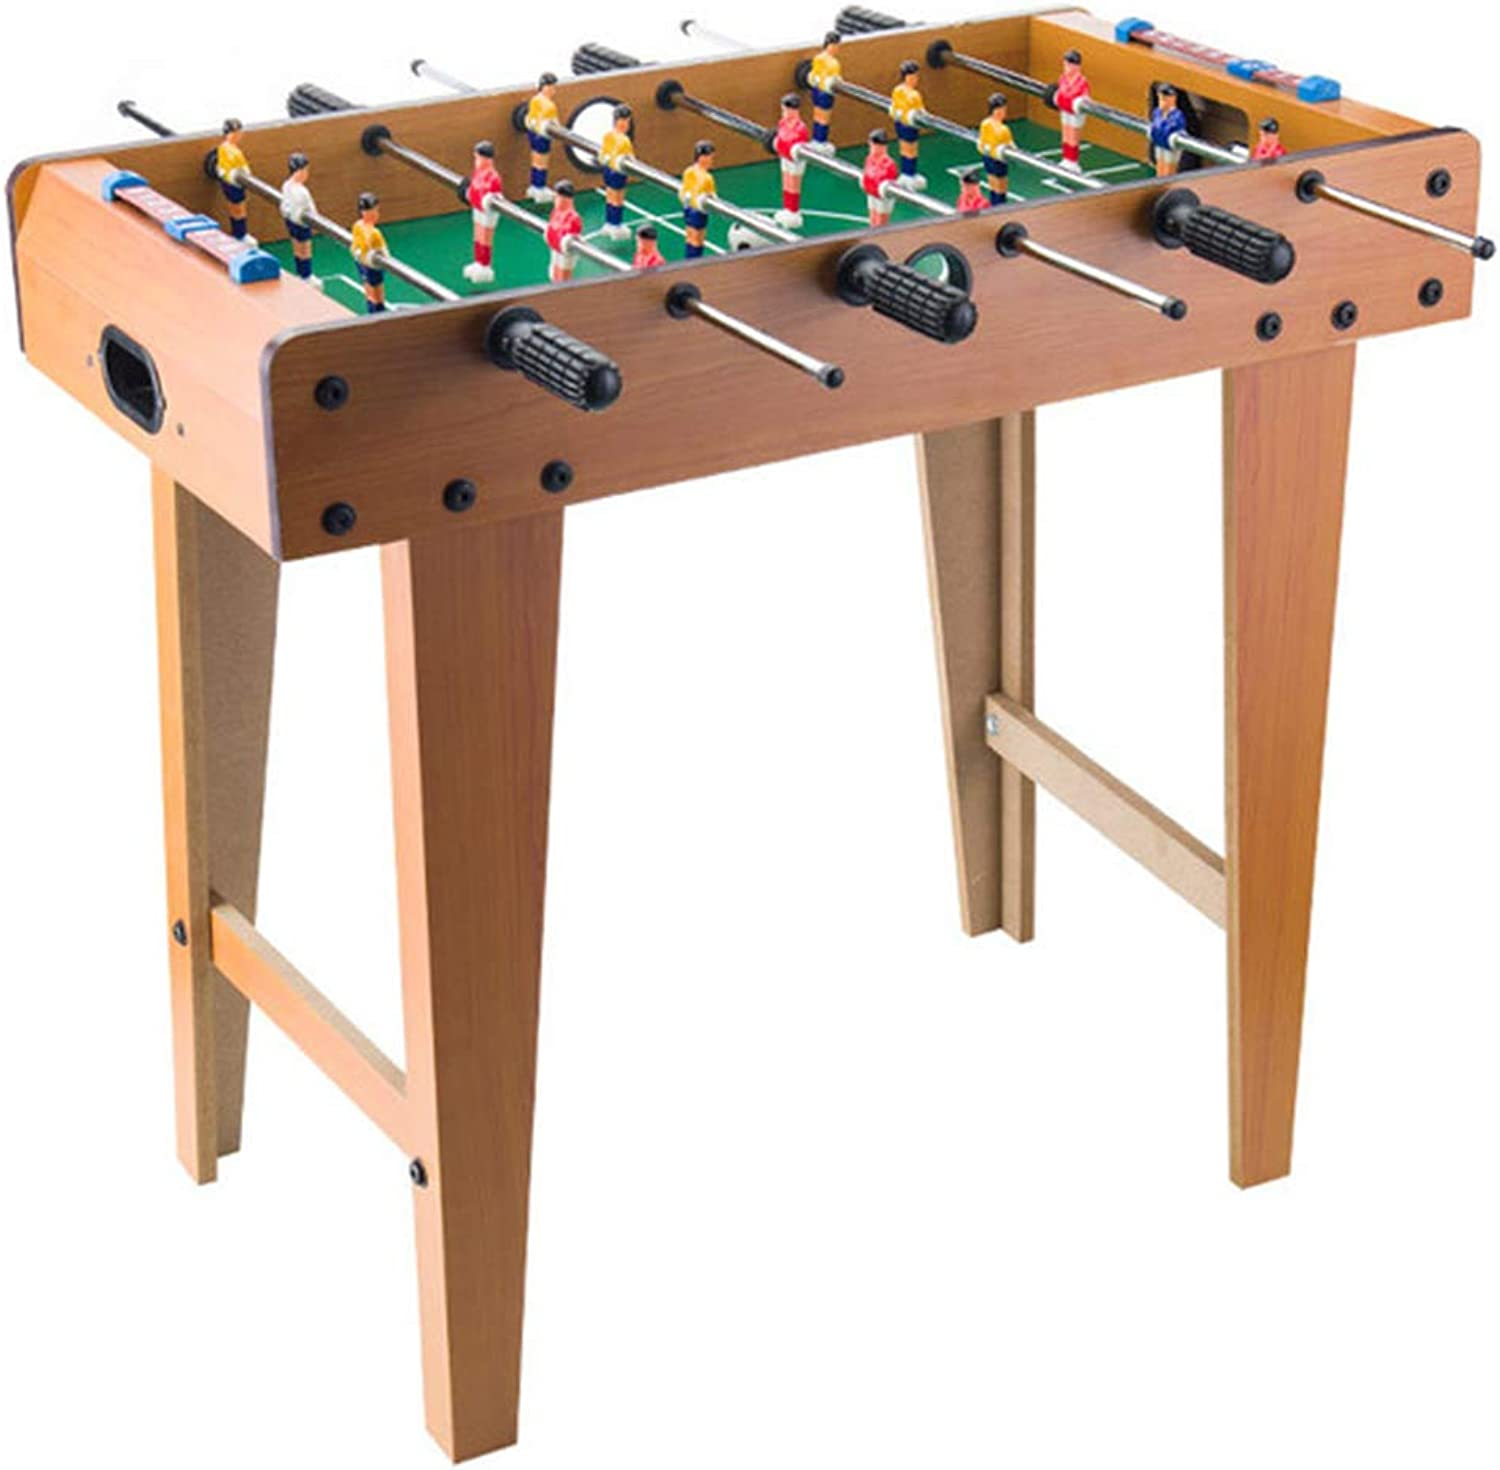 Zgifts Tabletop Foosball Table Games - Standing Mini Table Soccer Sport Game Set Room Sports with Long Legs for Home Party Adults Kids,Longlegs